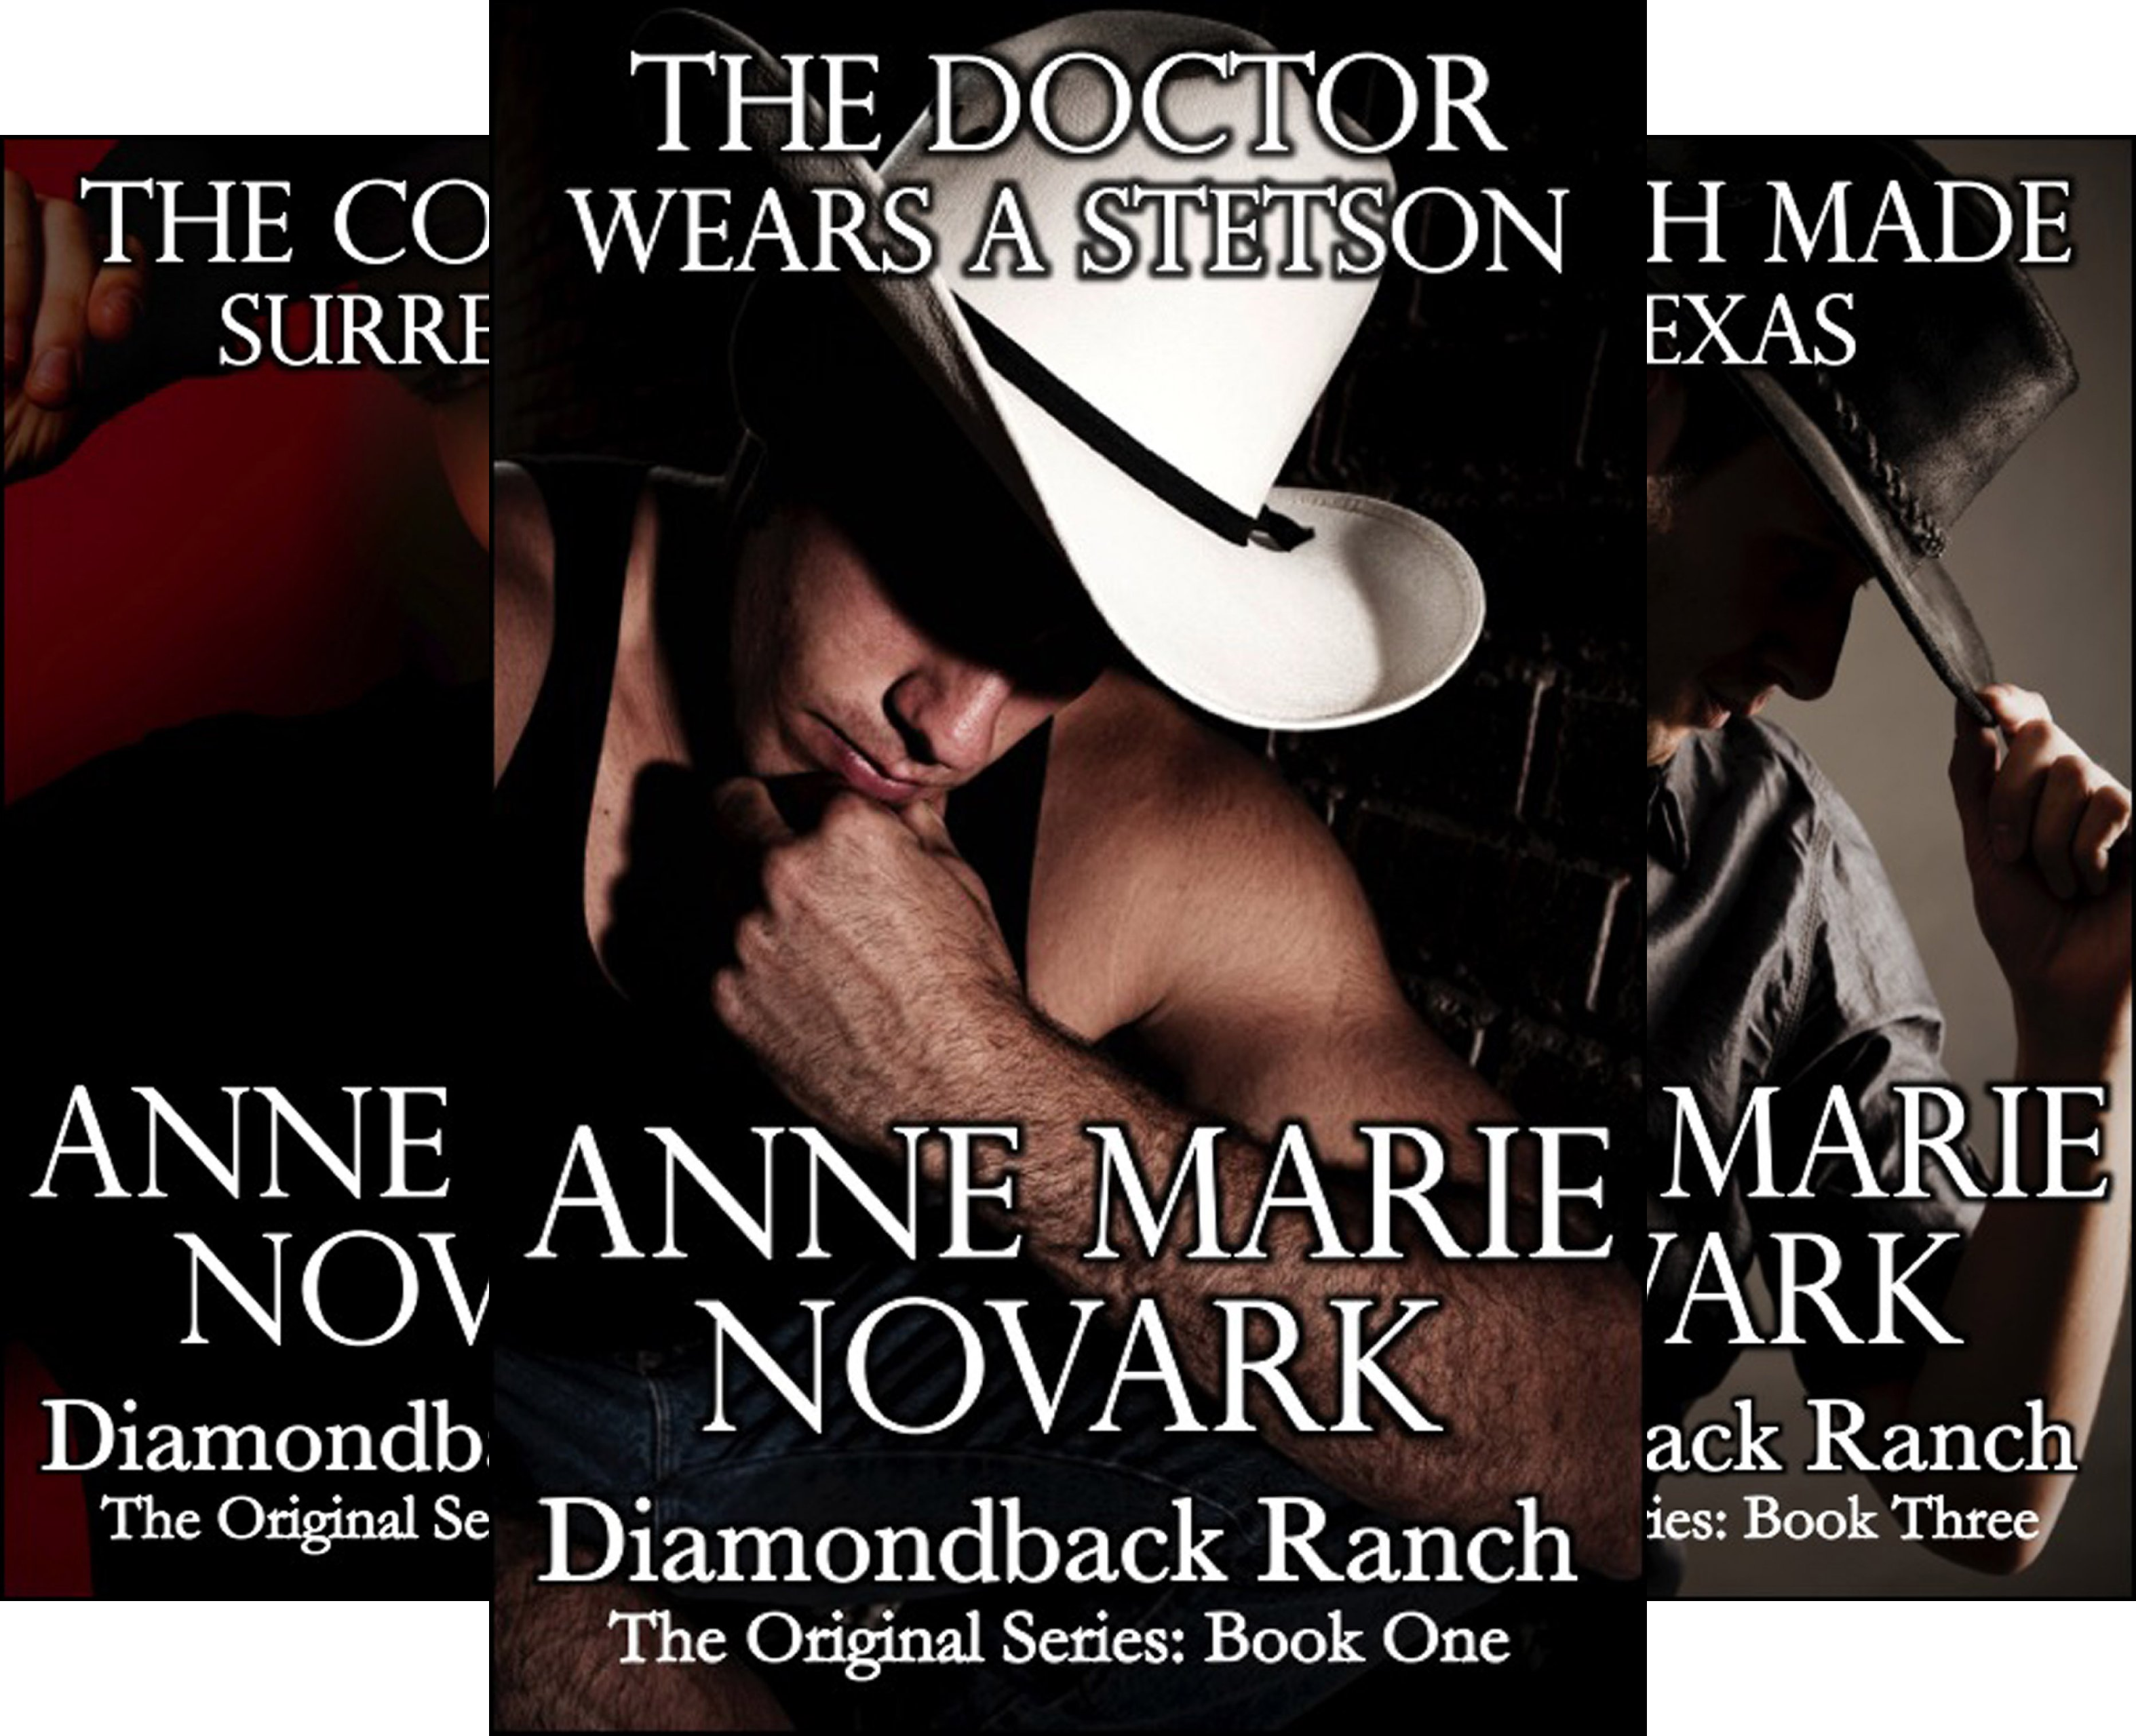 the-diamondback-ranch-original-series-6-book-series